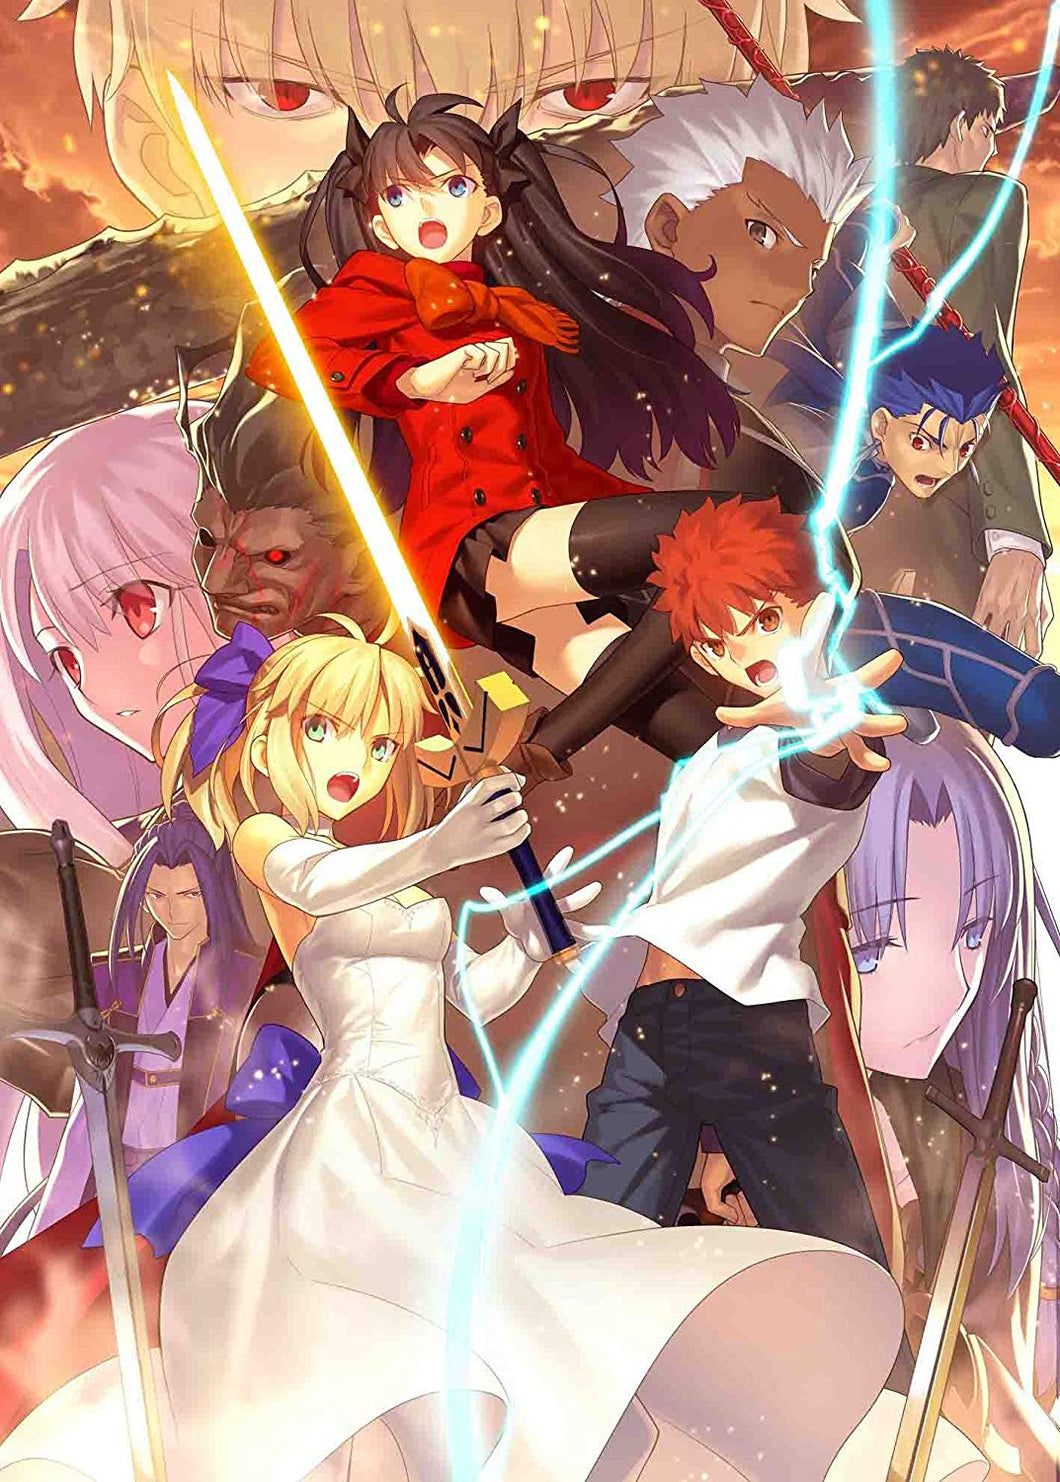 Fate / stay night [Unlimited Blade Works] Blu-ray Disc Box Ⅱ [Fully Production Limited Edition]